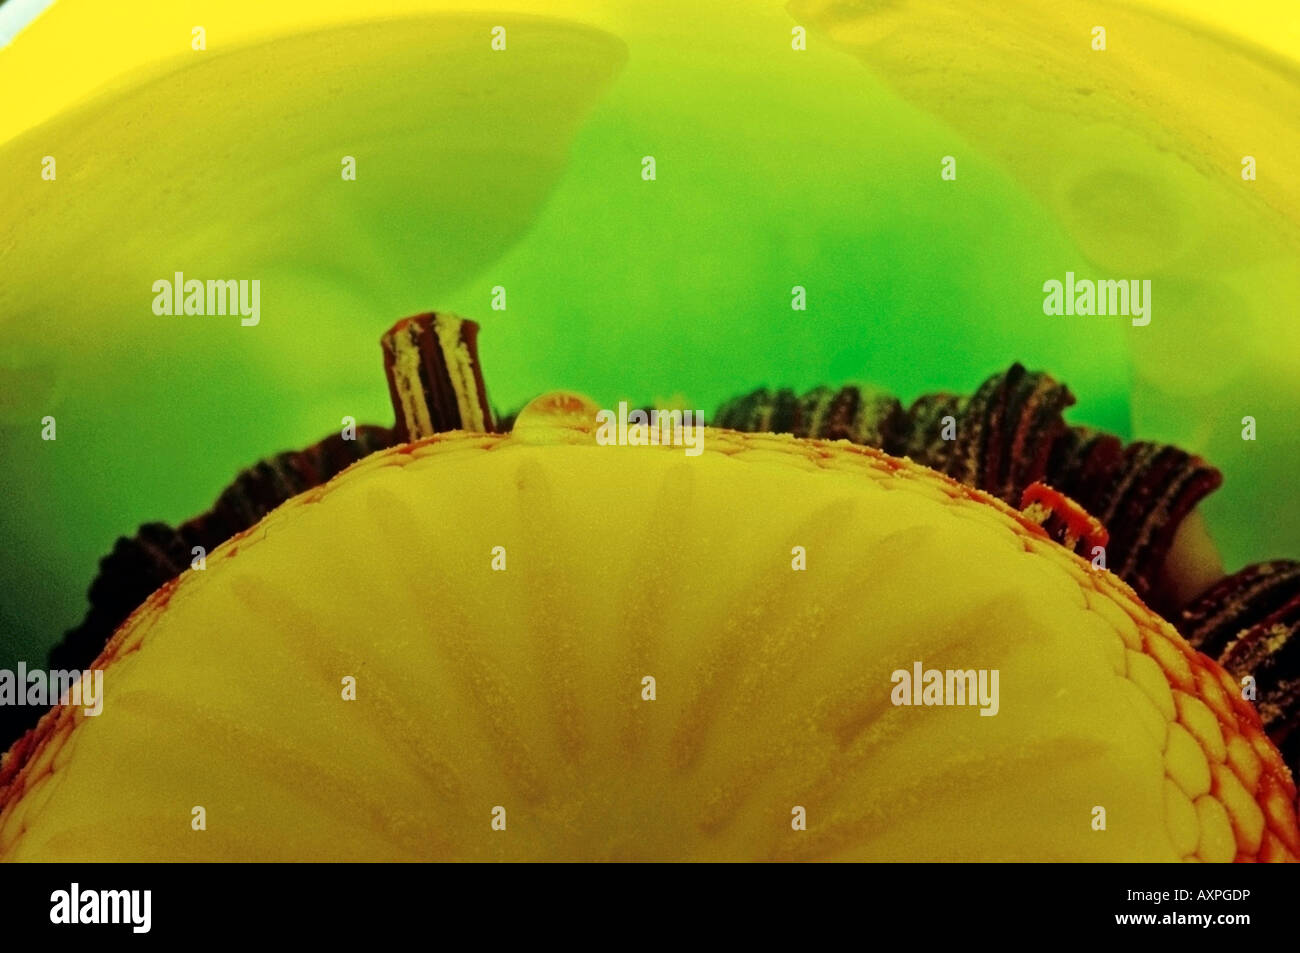 Macro of the interior of a yellow Water Lilly - Stock Image